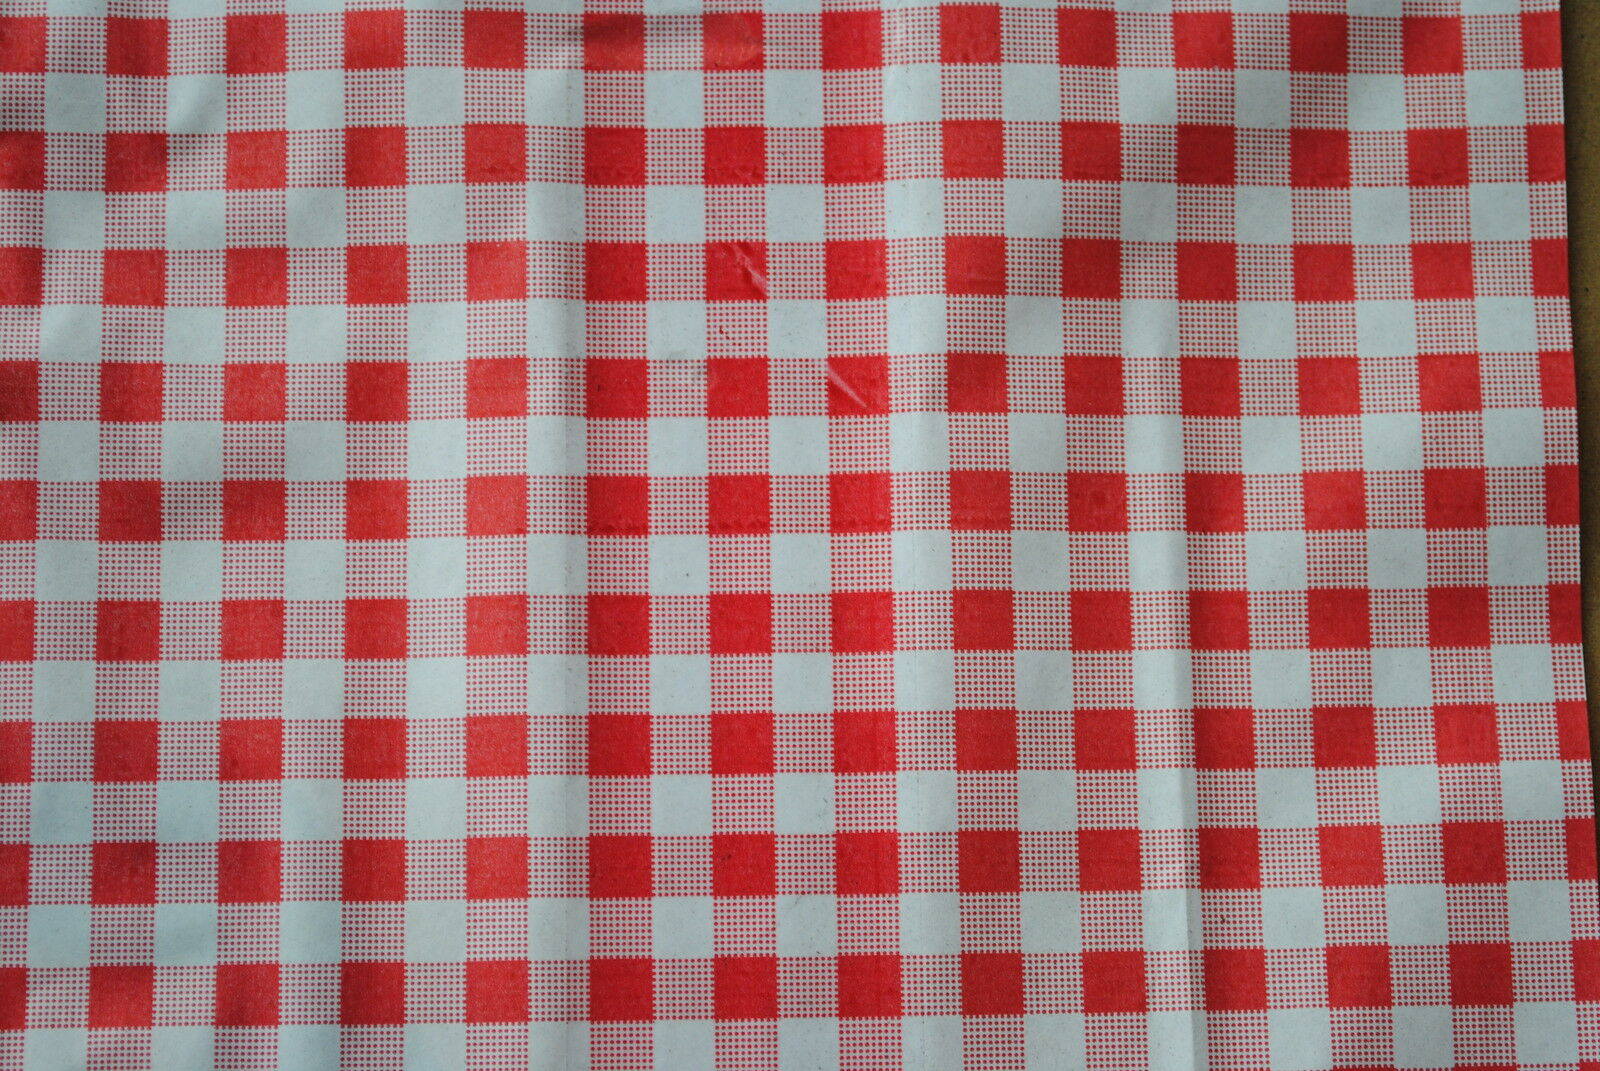 10kg x Gingham Duplex Sheets rot (10 x15 ins) BUTCHERS DELI CATERING MEAT (1149)